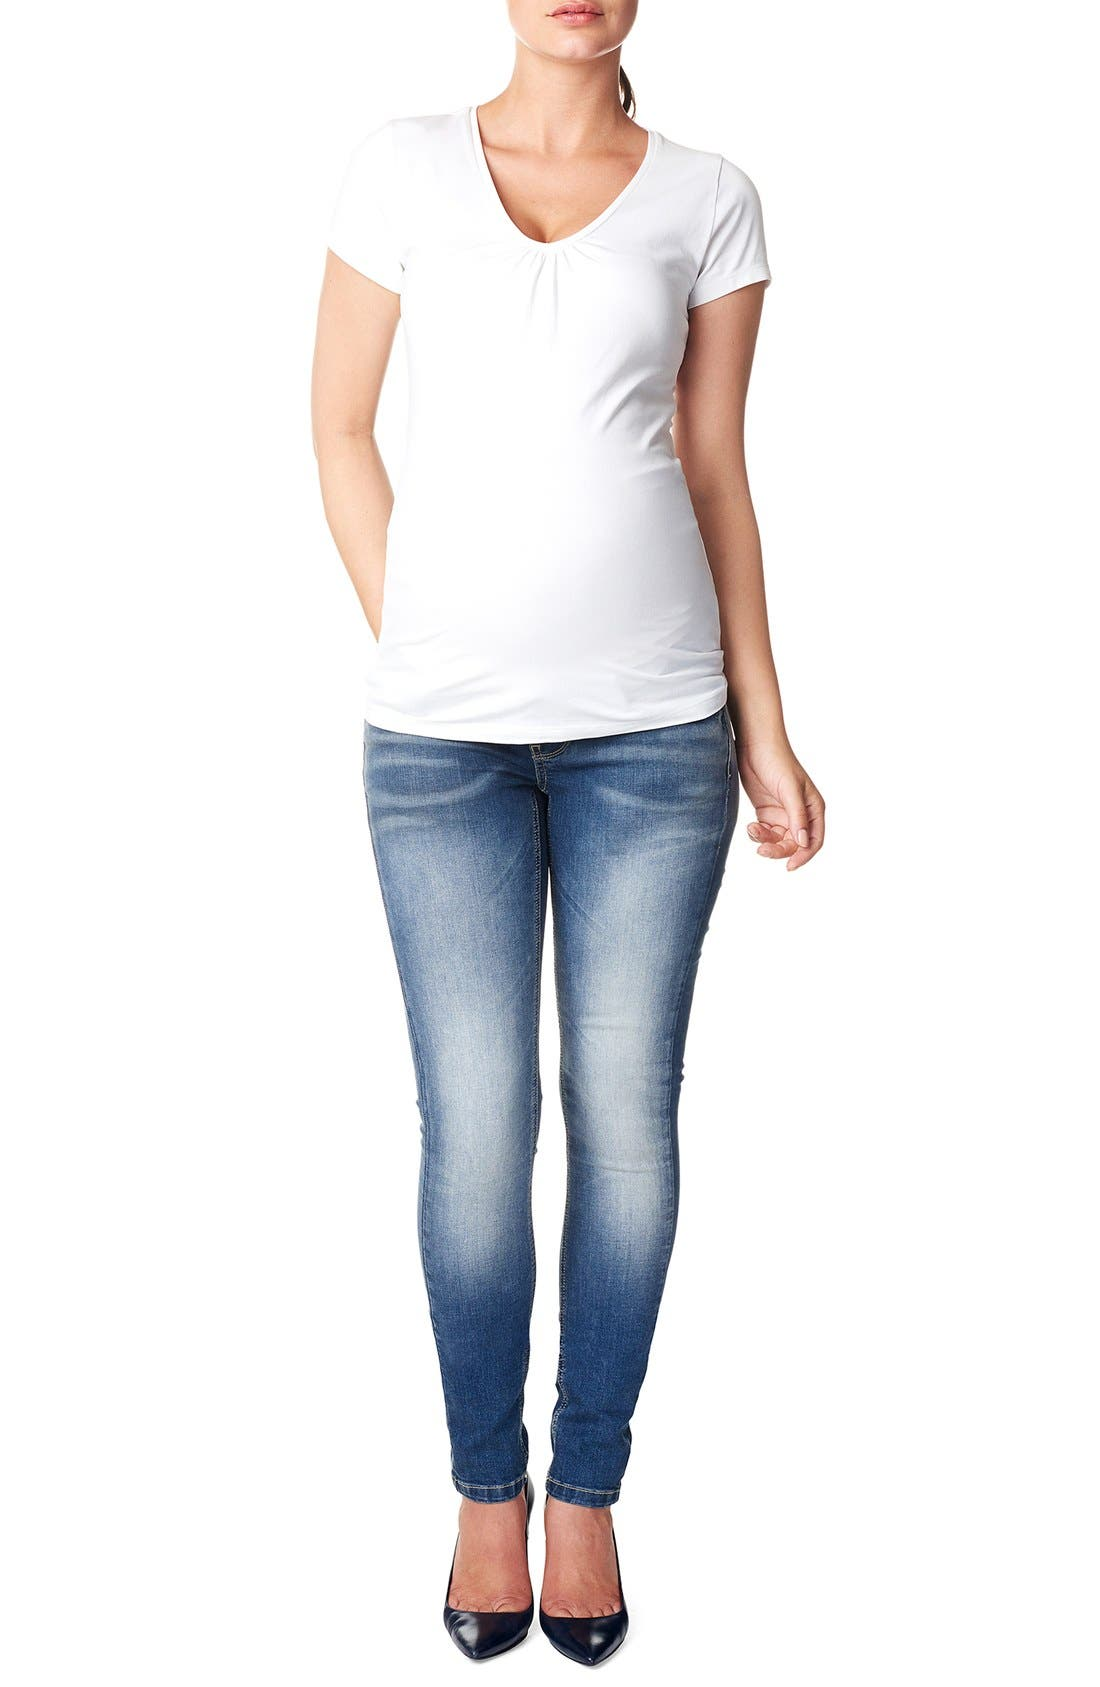 NOPPIES 'Tara' Over the Belly Skinny Maternity Jeans, Main, color, STONE WASH